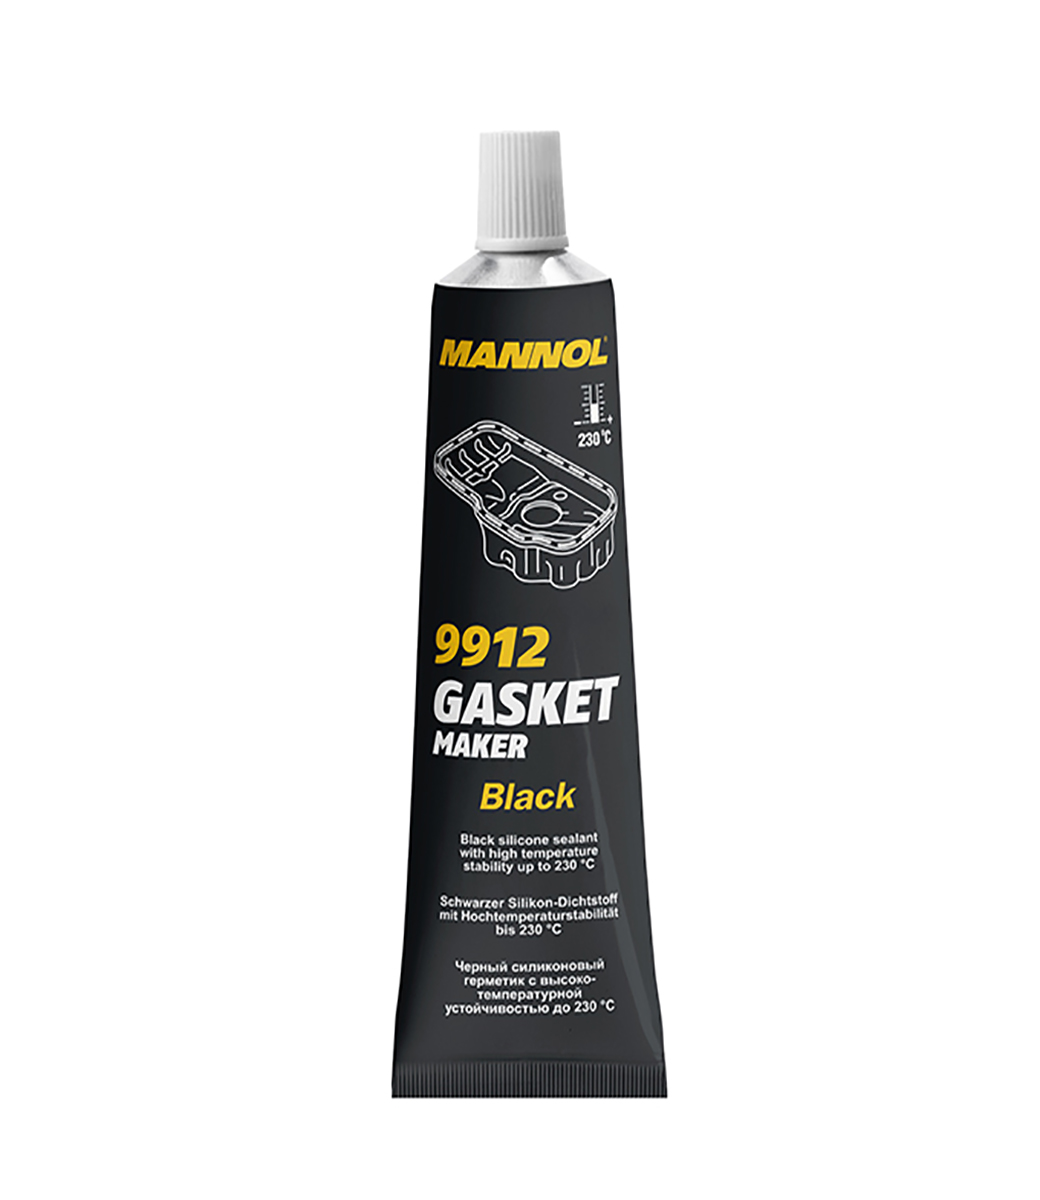 Gasket Maker Black